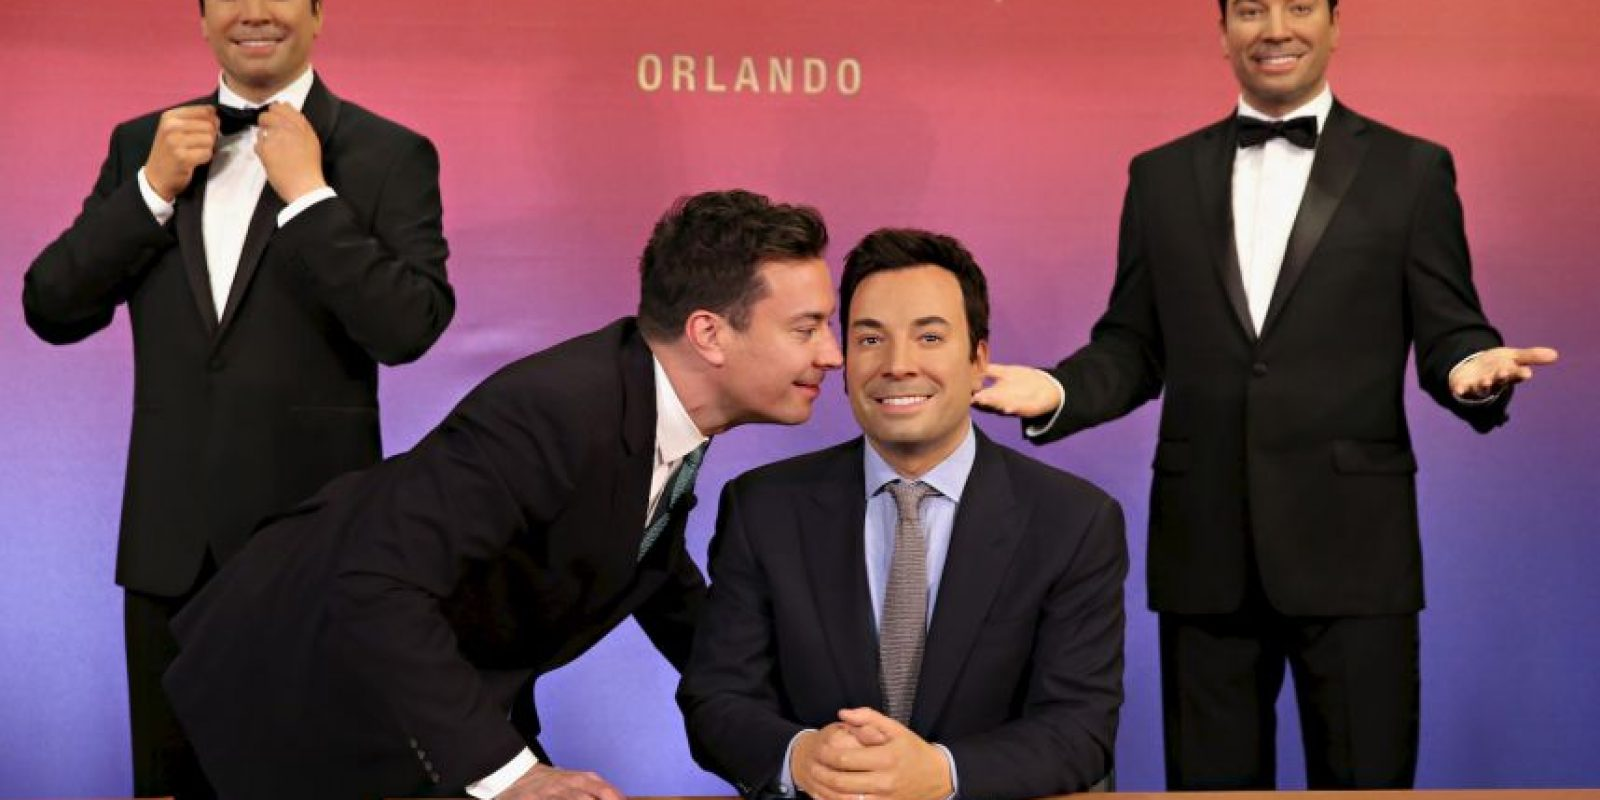 Jimmy Fallon Foto: Getty Images